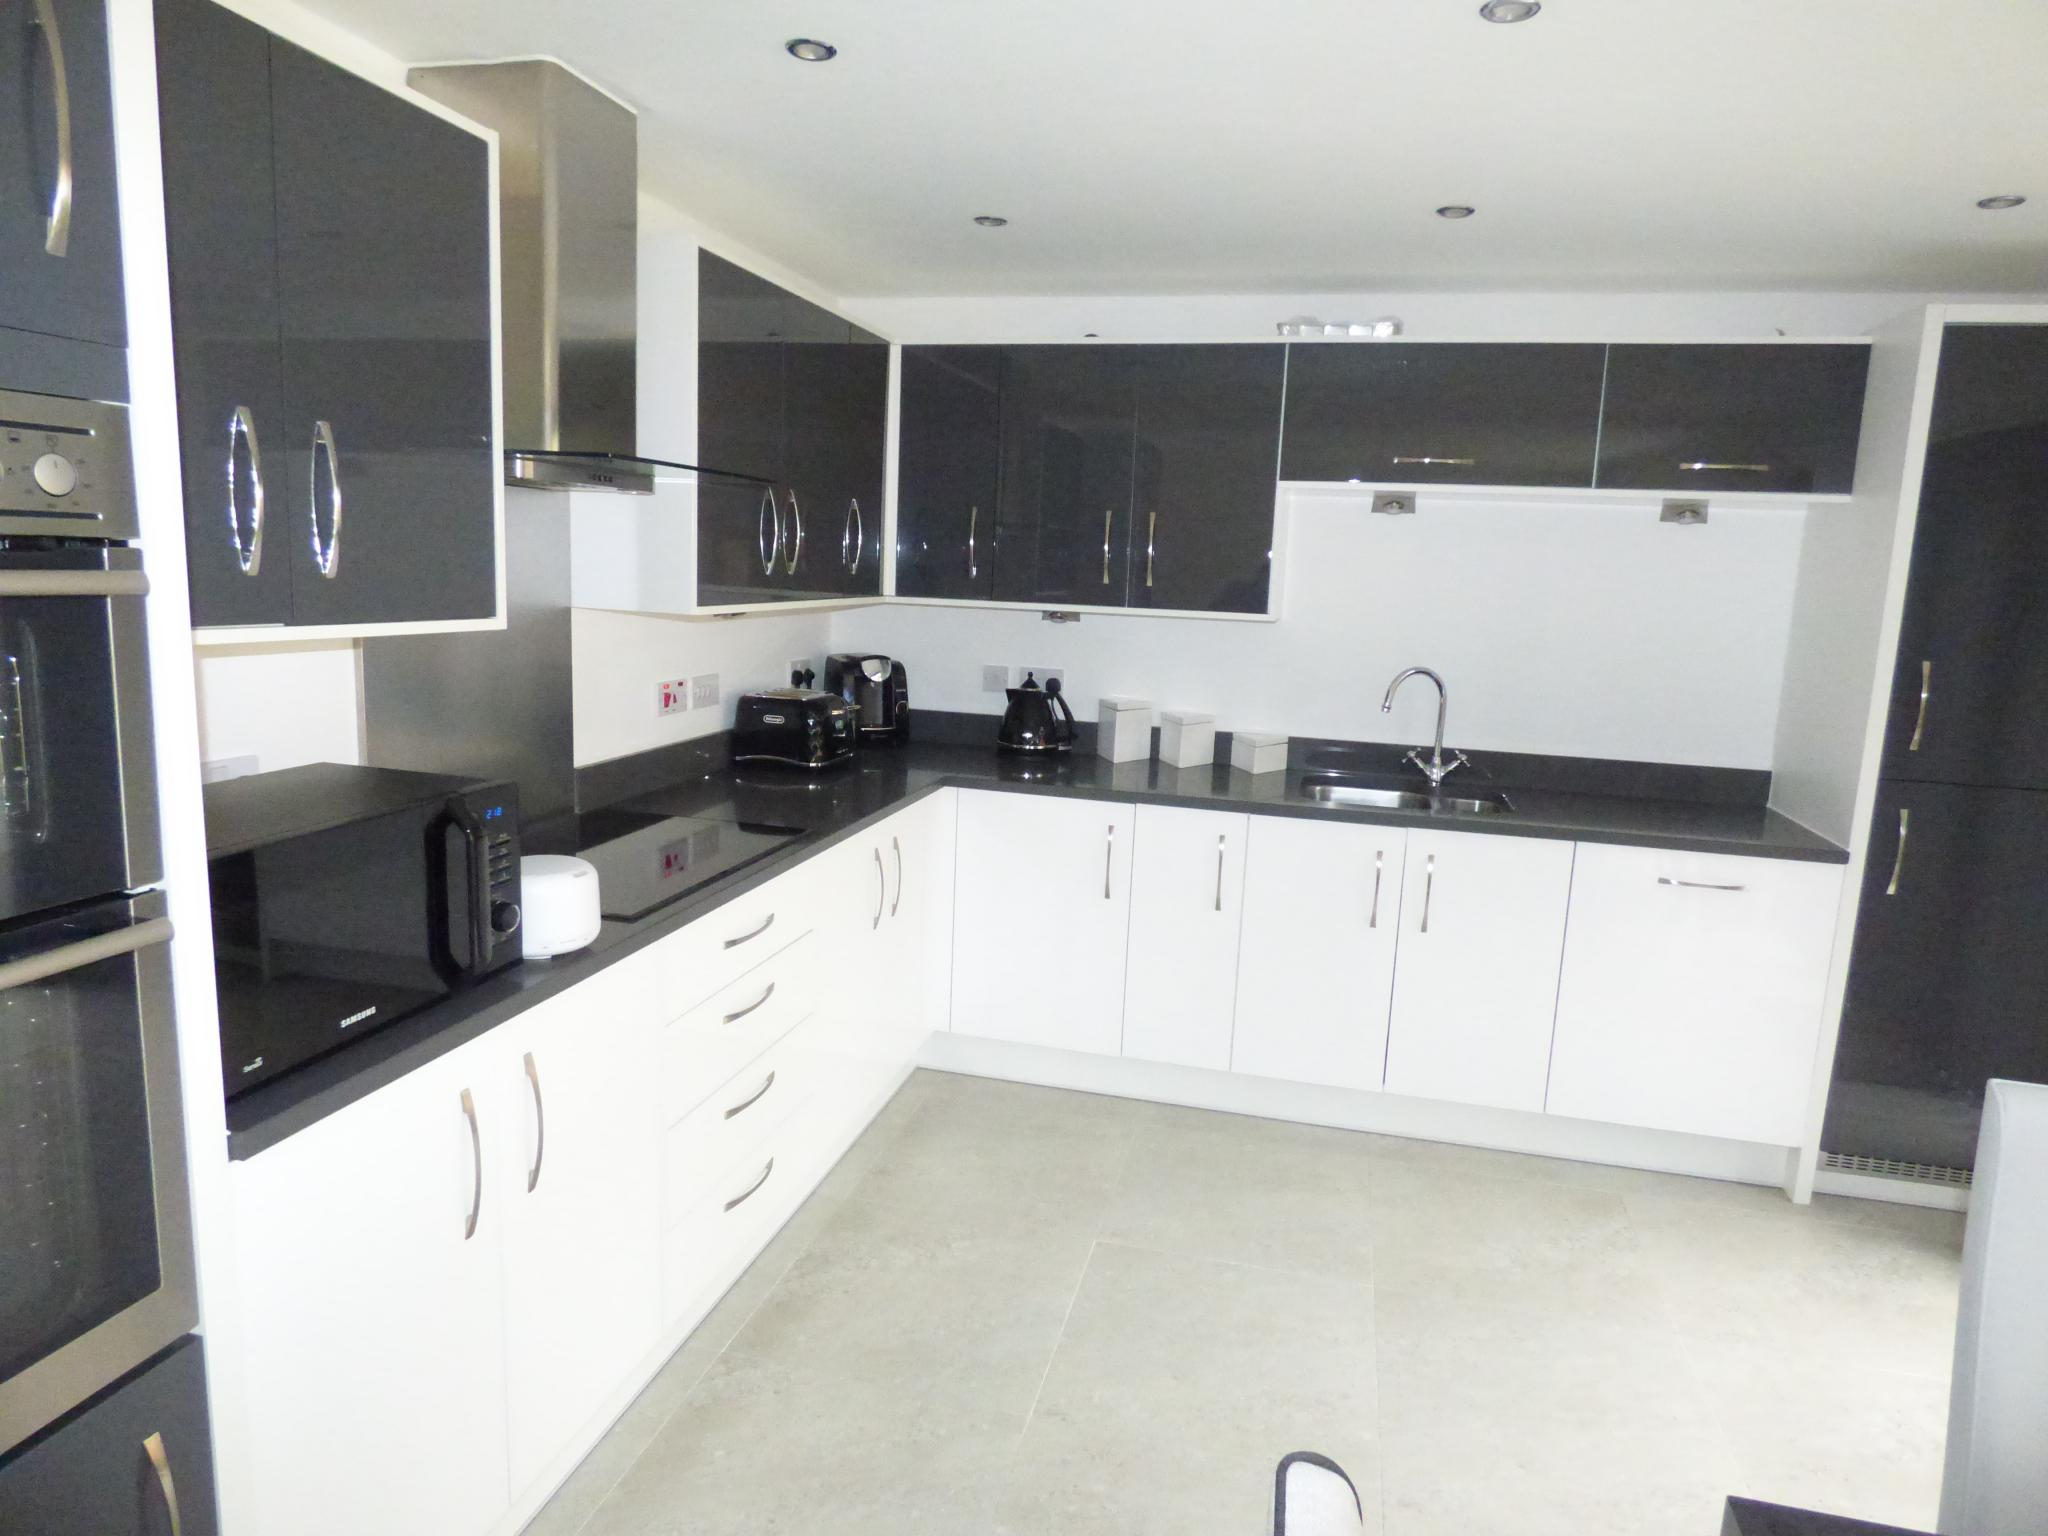 4 Bedroom Detached House For Sale - 7